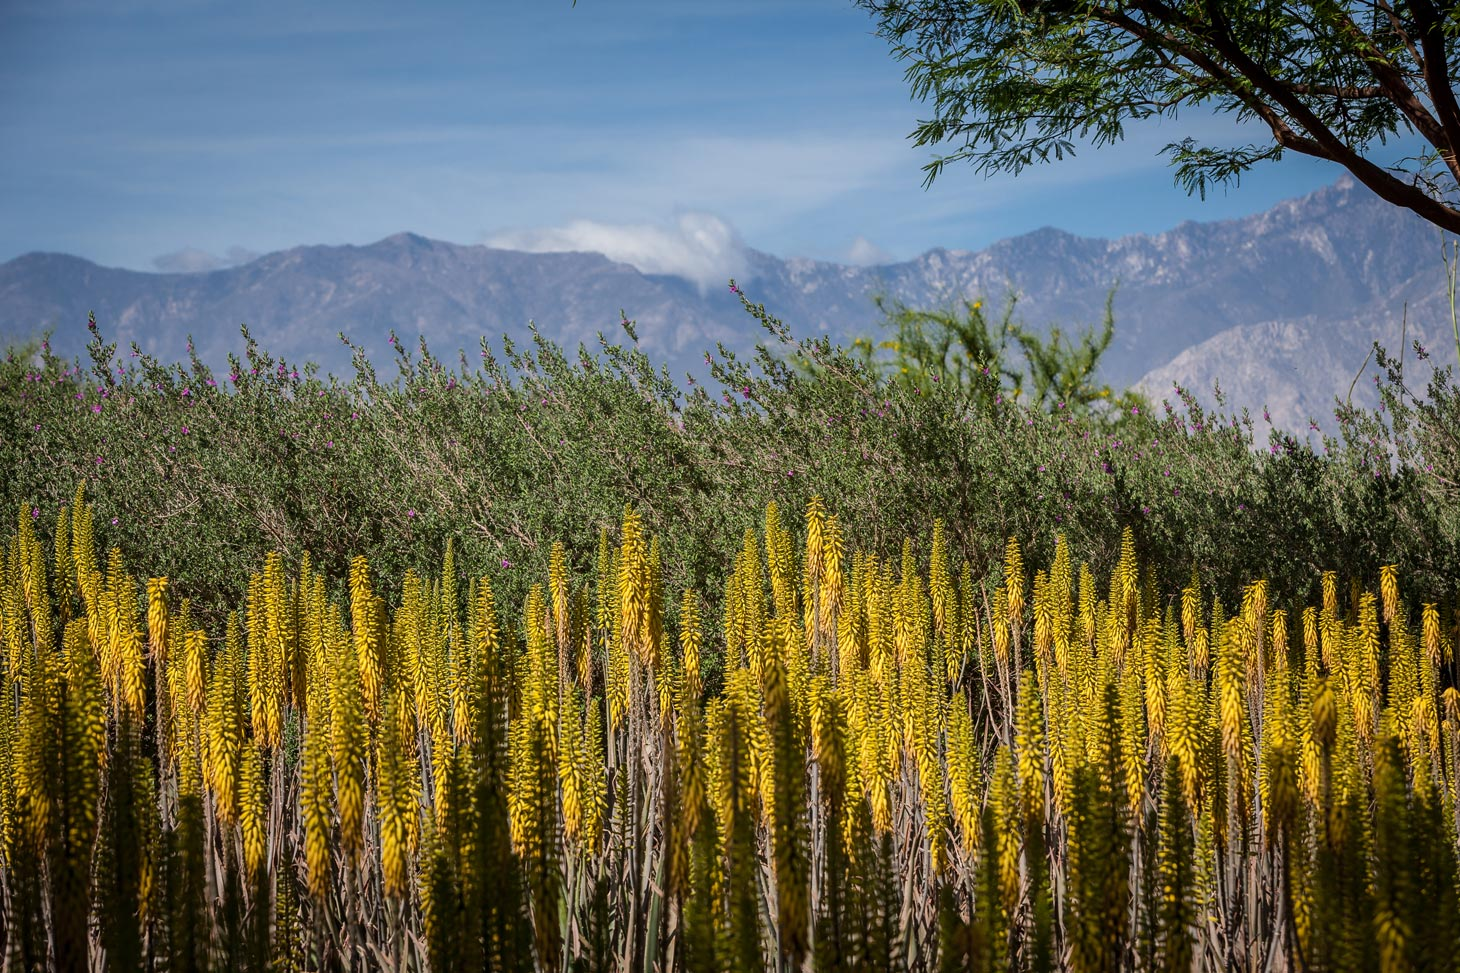 A wide view of rows of flowering aloes along with mountains in the background.